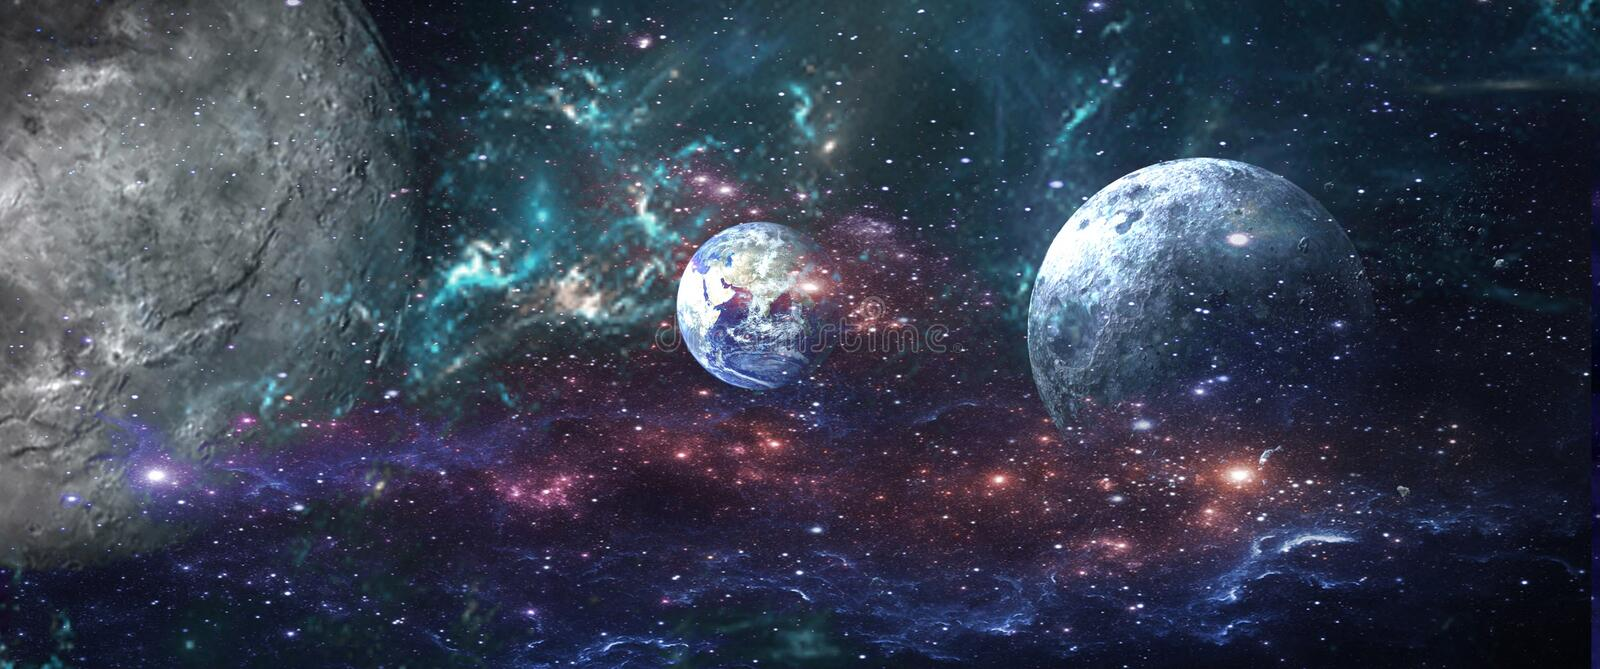 Planets and galaxies, science fiction wallpaper. Beauty of deep space. vector illustration